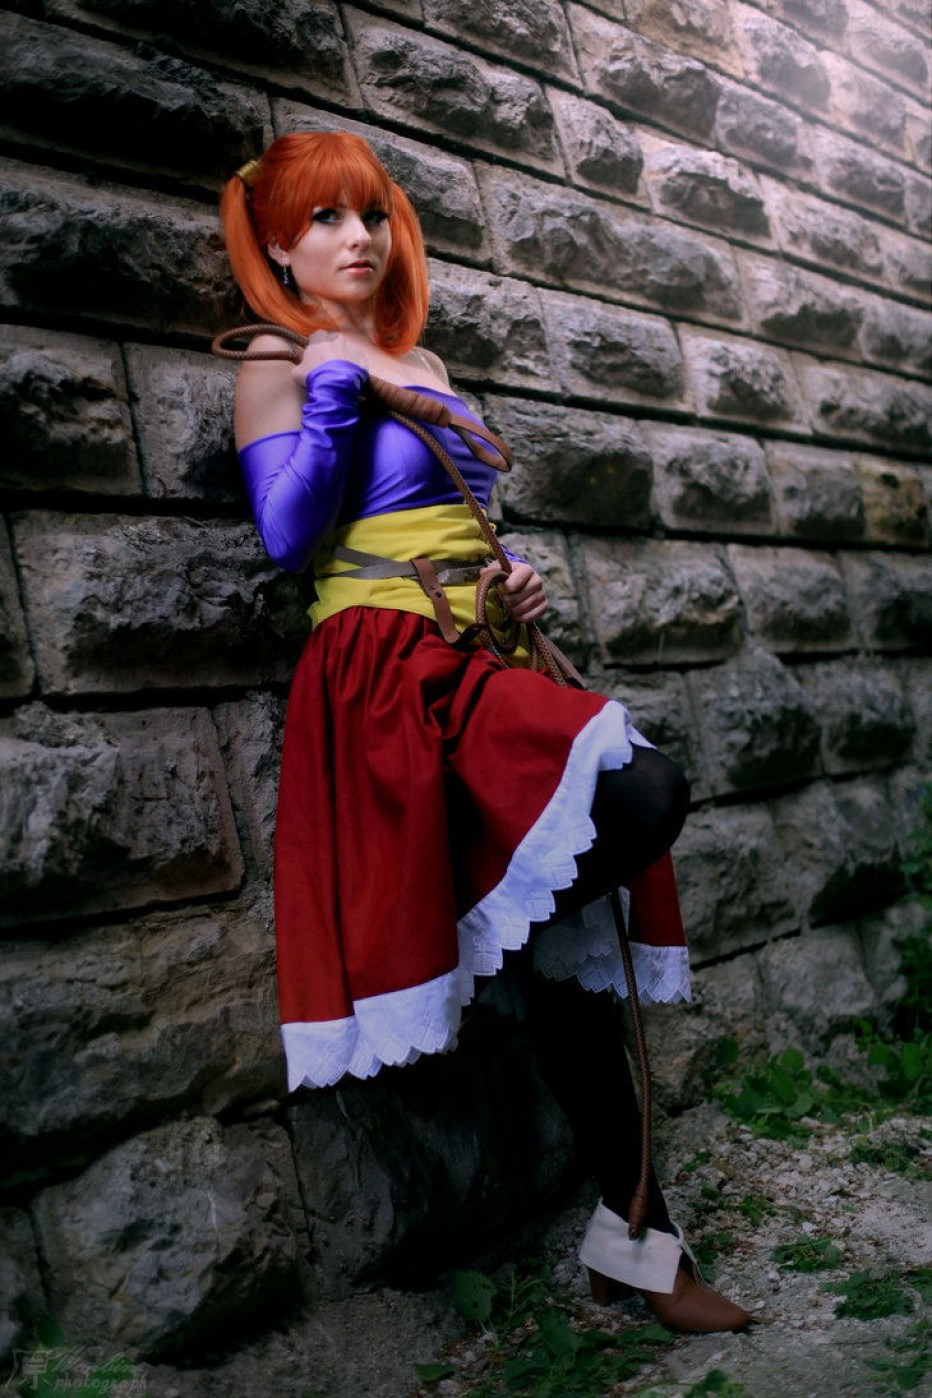 Dragon-Quest-Jessica-Albert-Cosplay-Gamers-Heroes-3.jpg